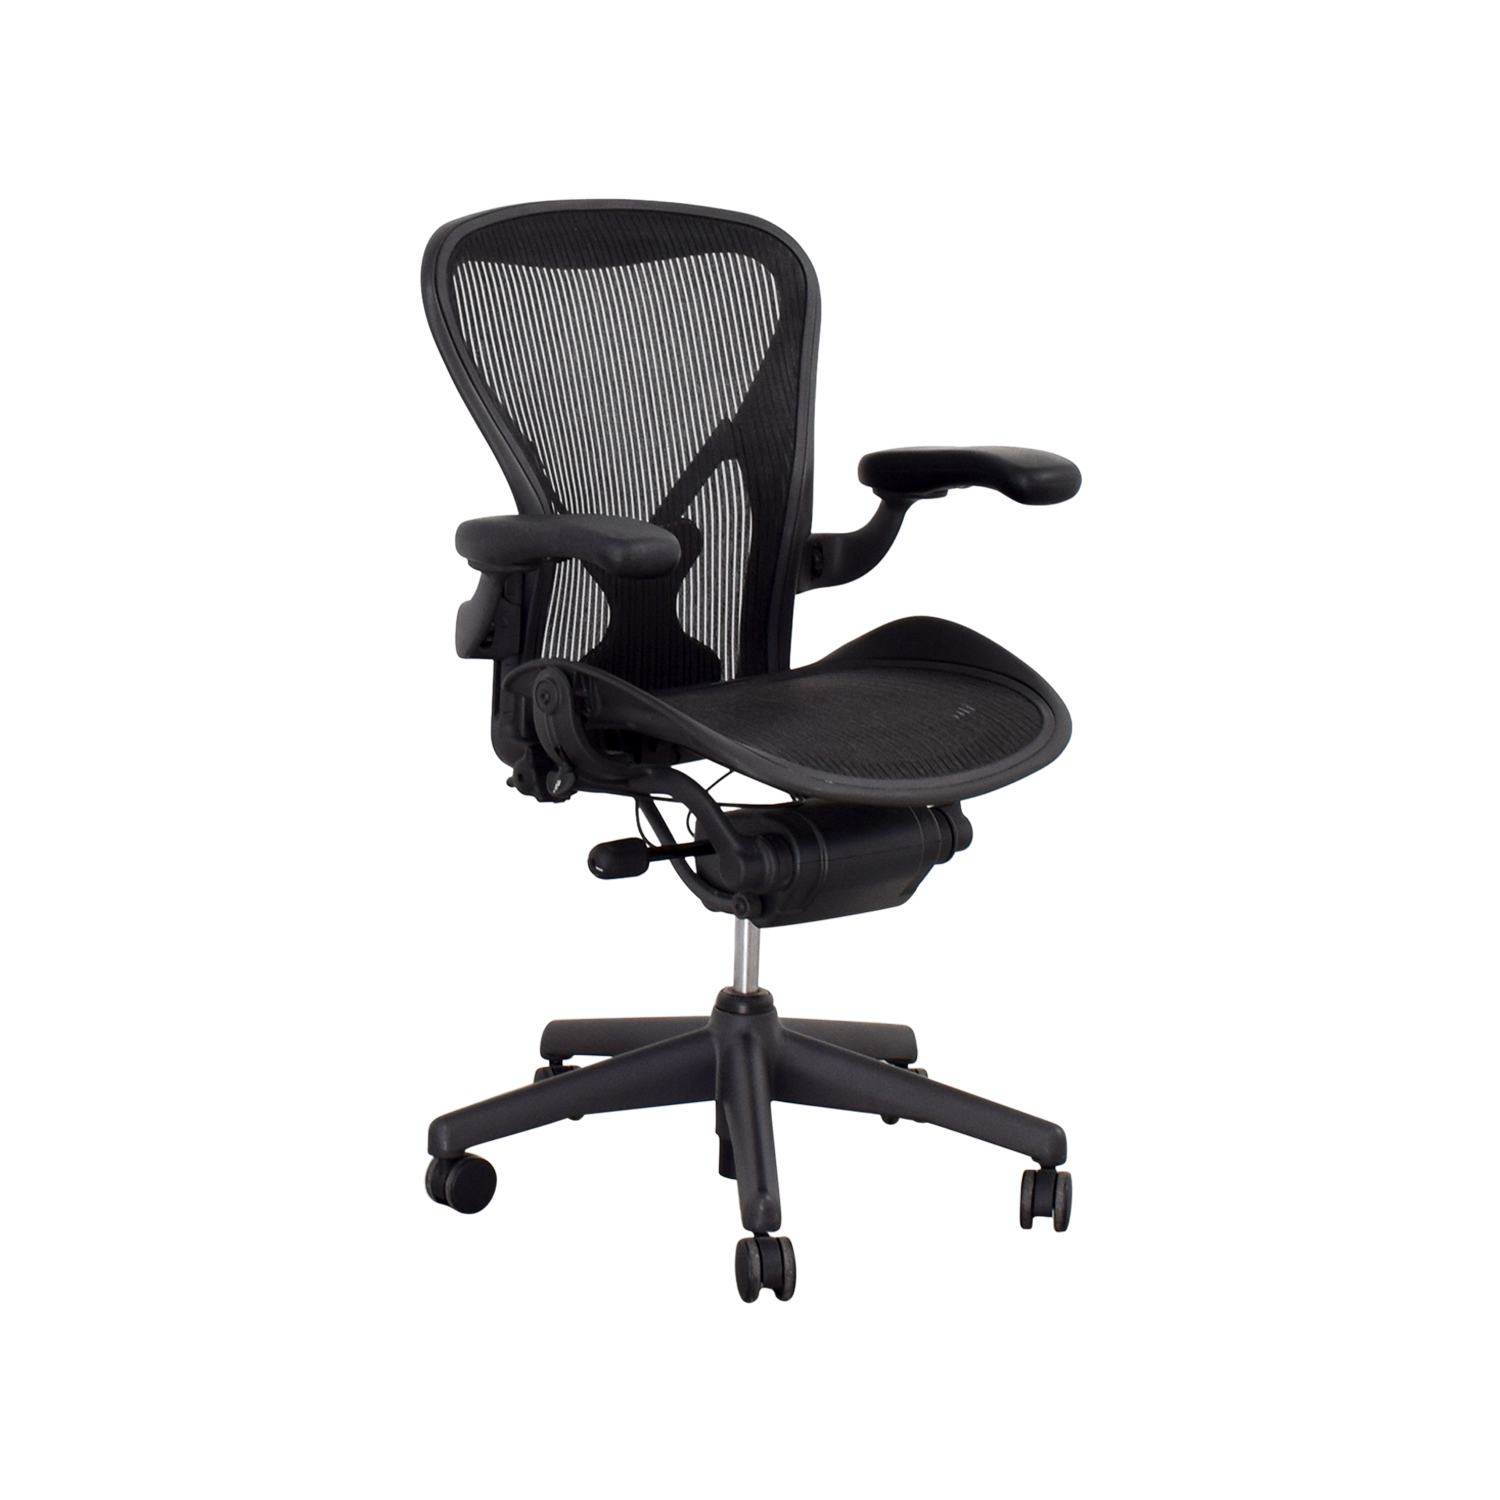 ... shop Herman Miller Herman Miller Aeron Task Chair online ...  sc 1 st  Furnishare : aeron miller chair - Cheerinfomania.Com